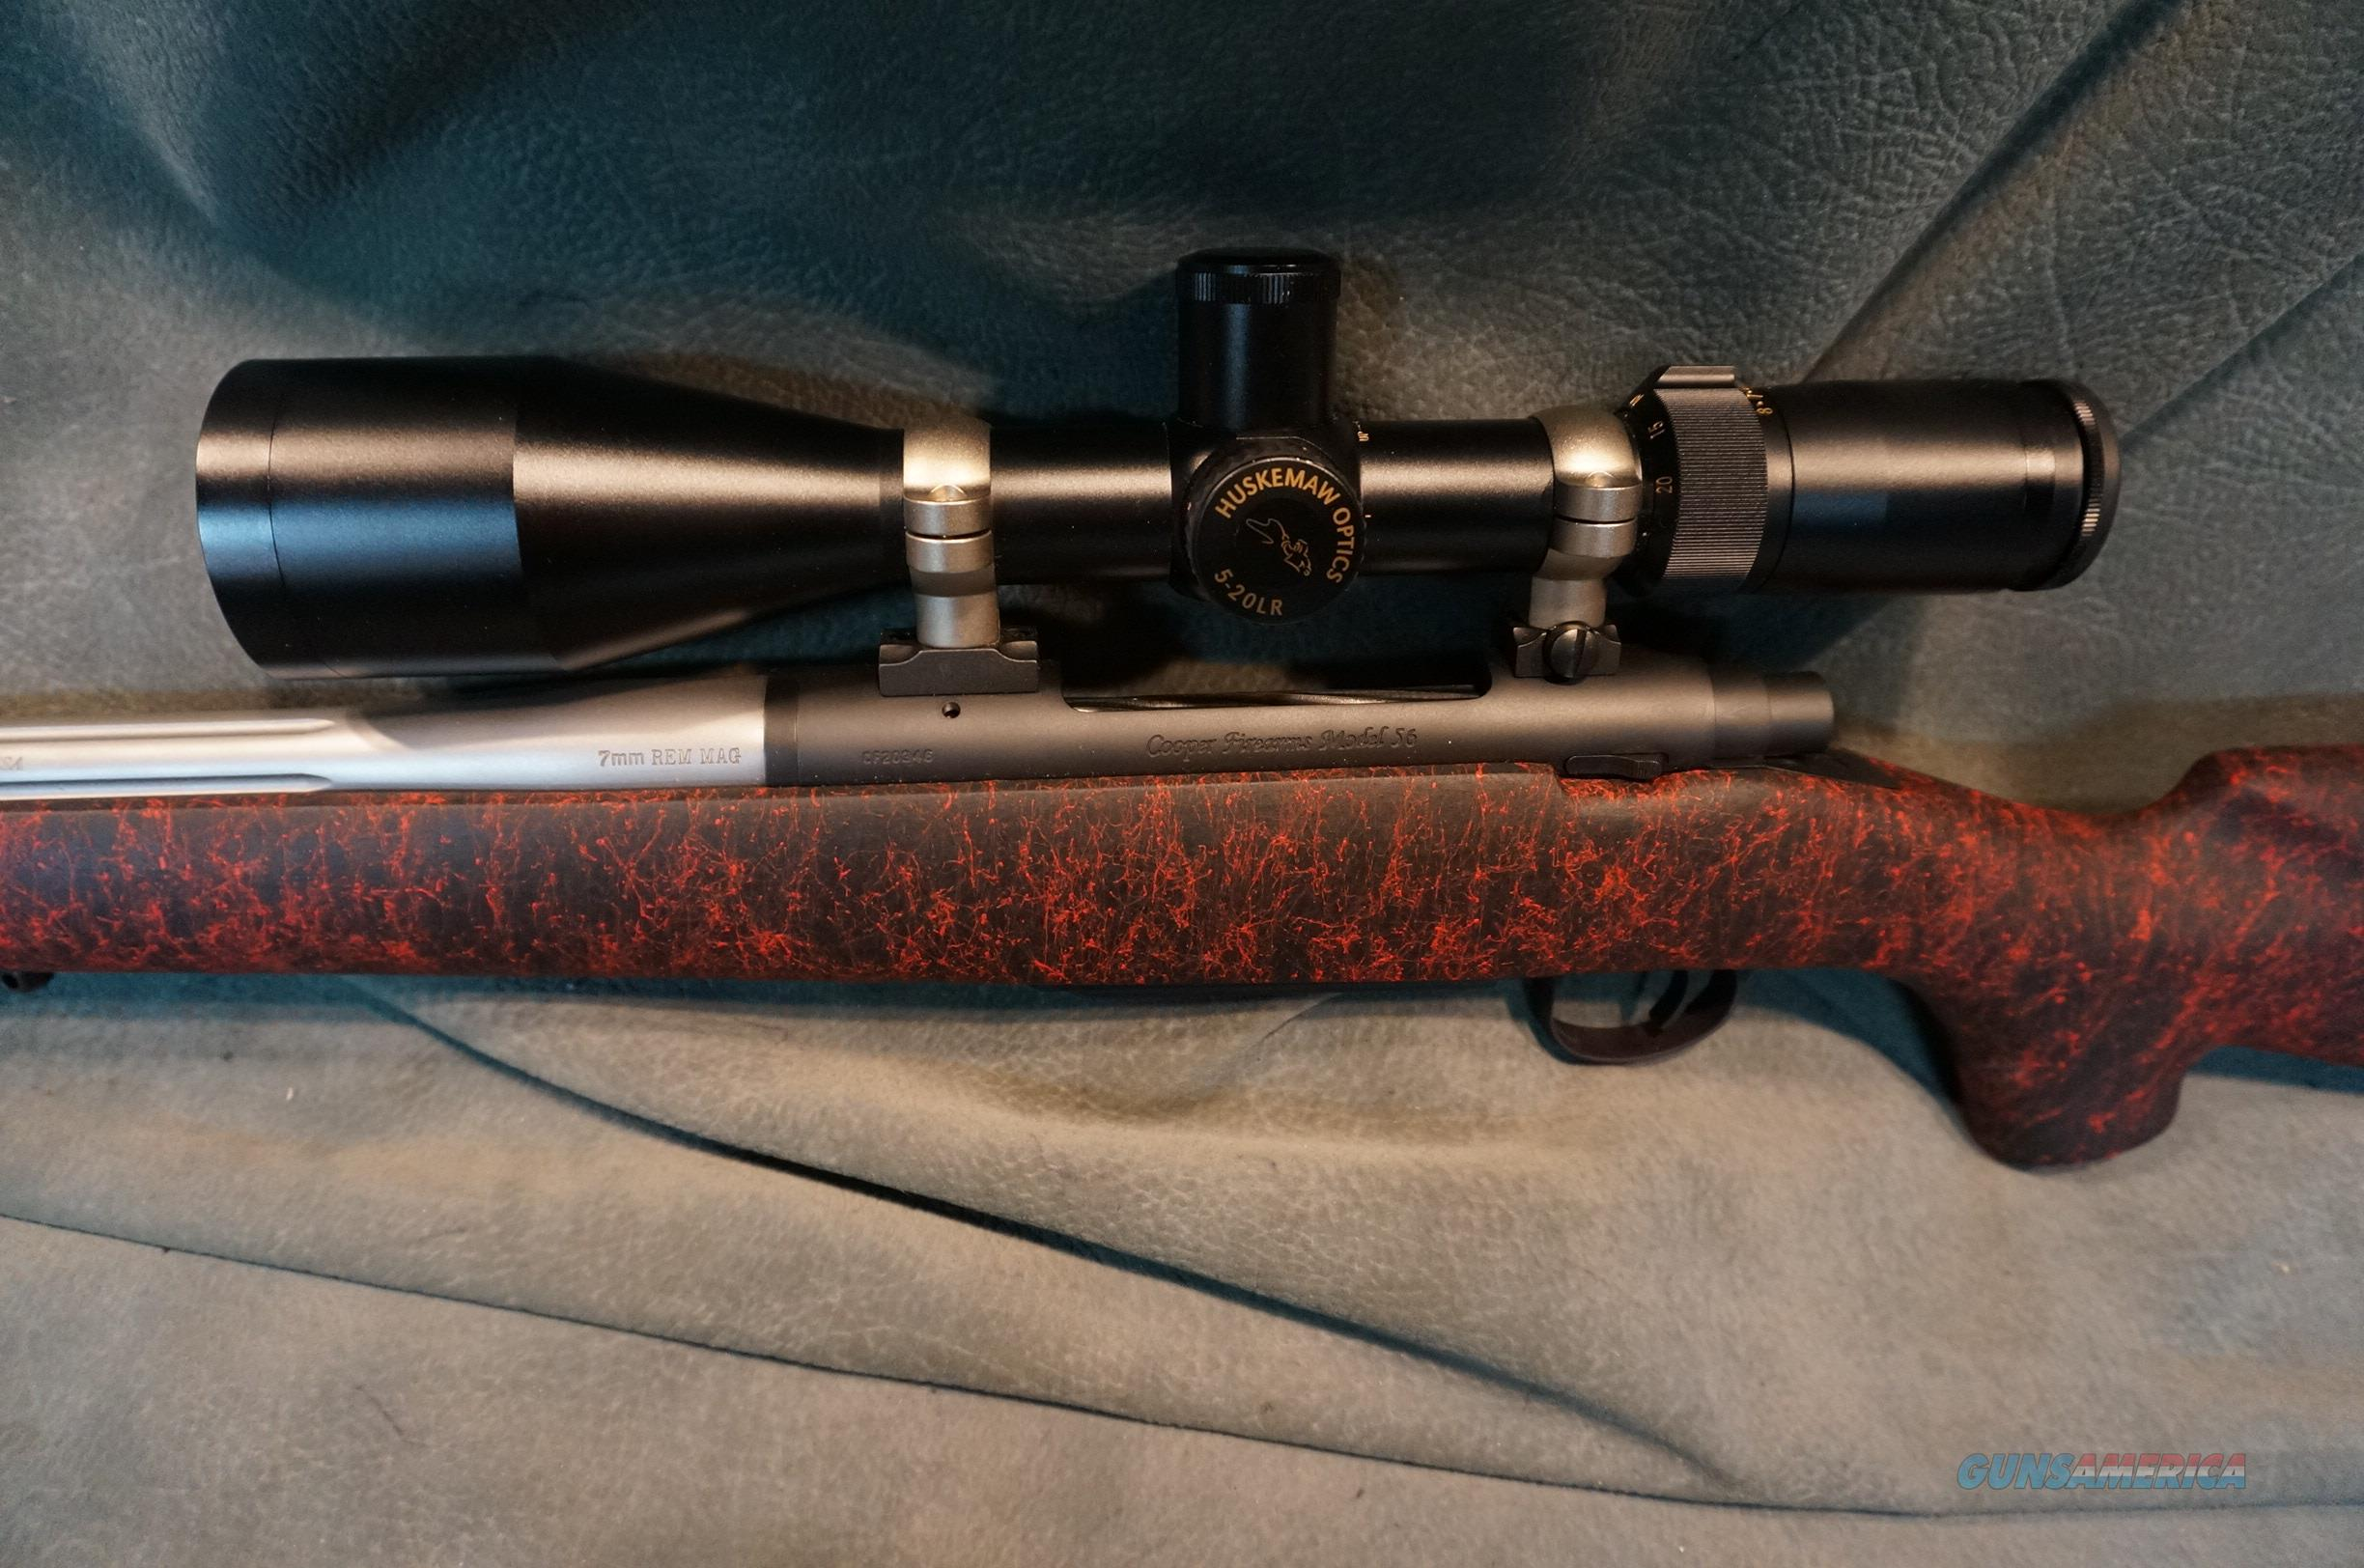 Cooper M56 Excaliber 7mmRemMag w/Huskemaw scope new unf...